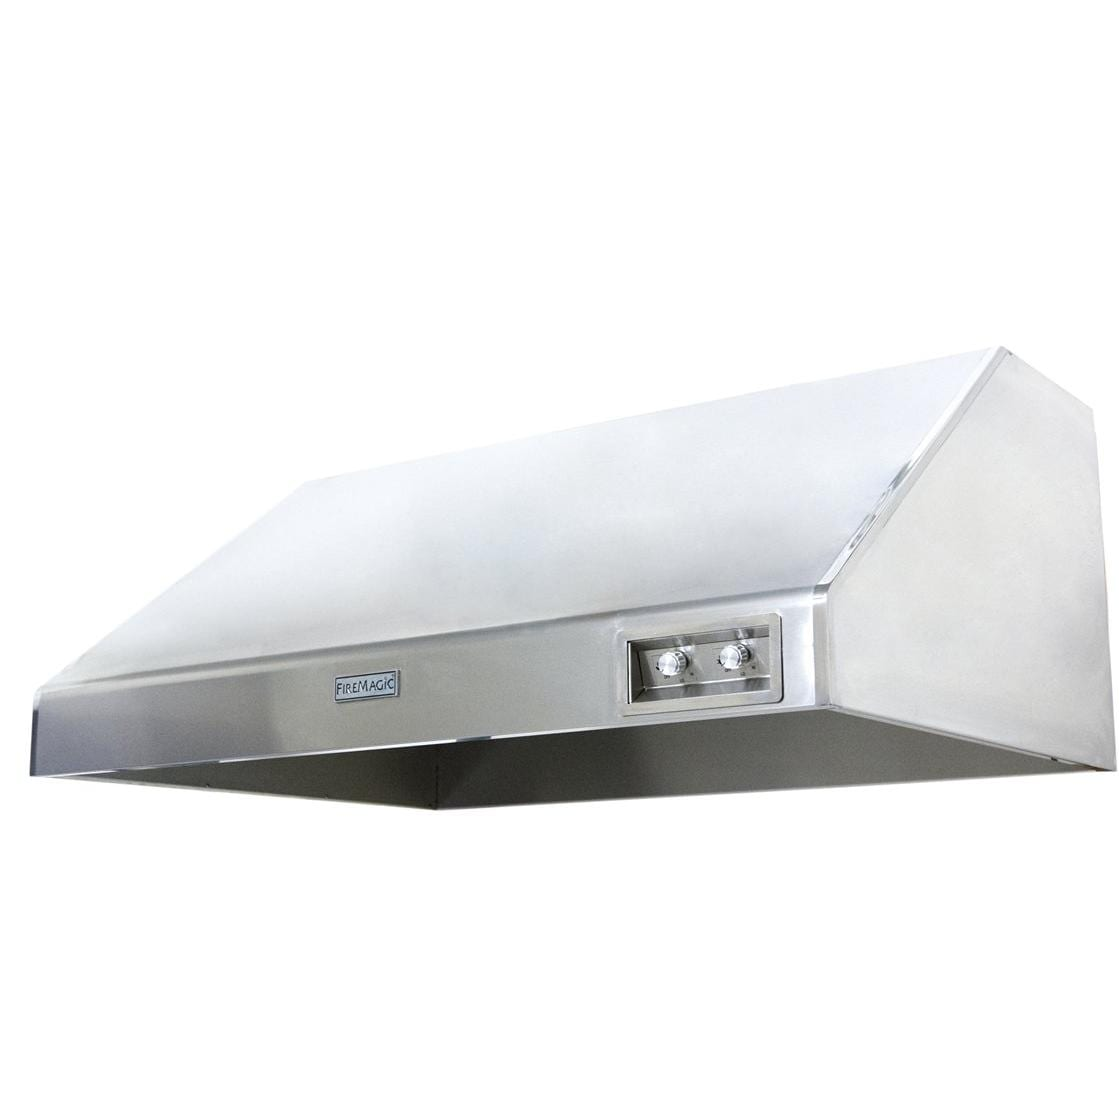 Fire Magic 42-Inch Outdoor Vent Hood